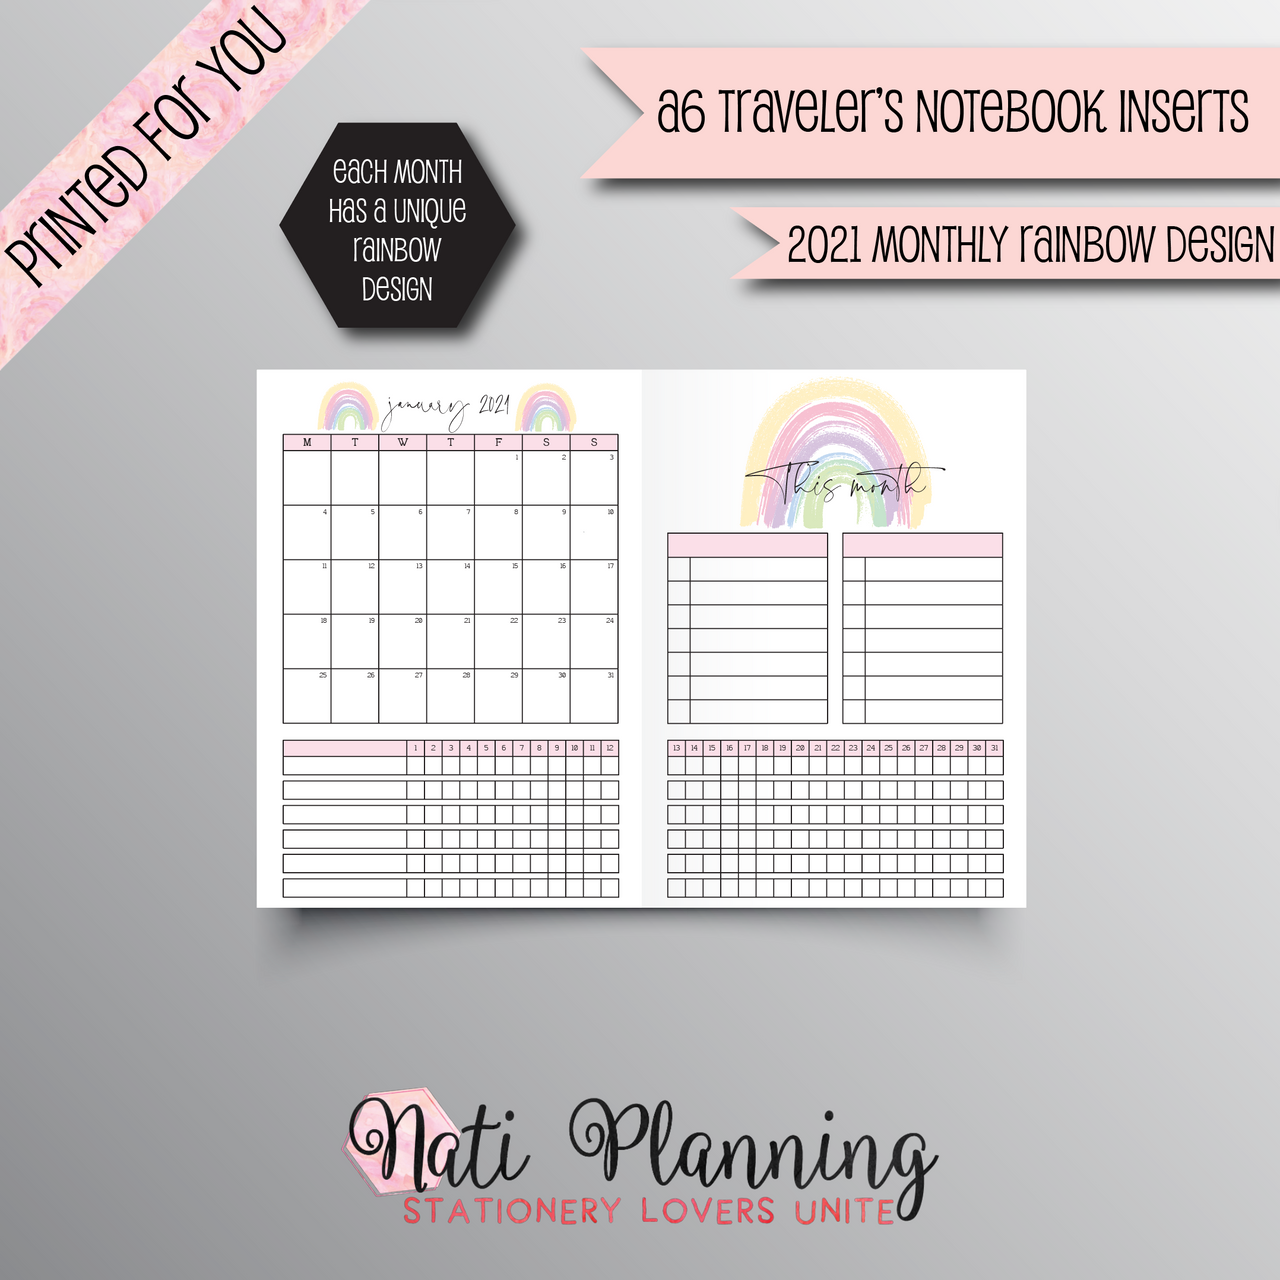 2021 MONTHLY RAINBOW DESIGN TN - A6 NO.3 SIZE INSERT